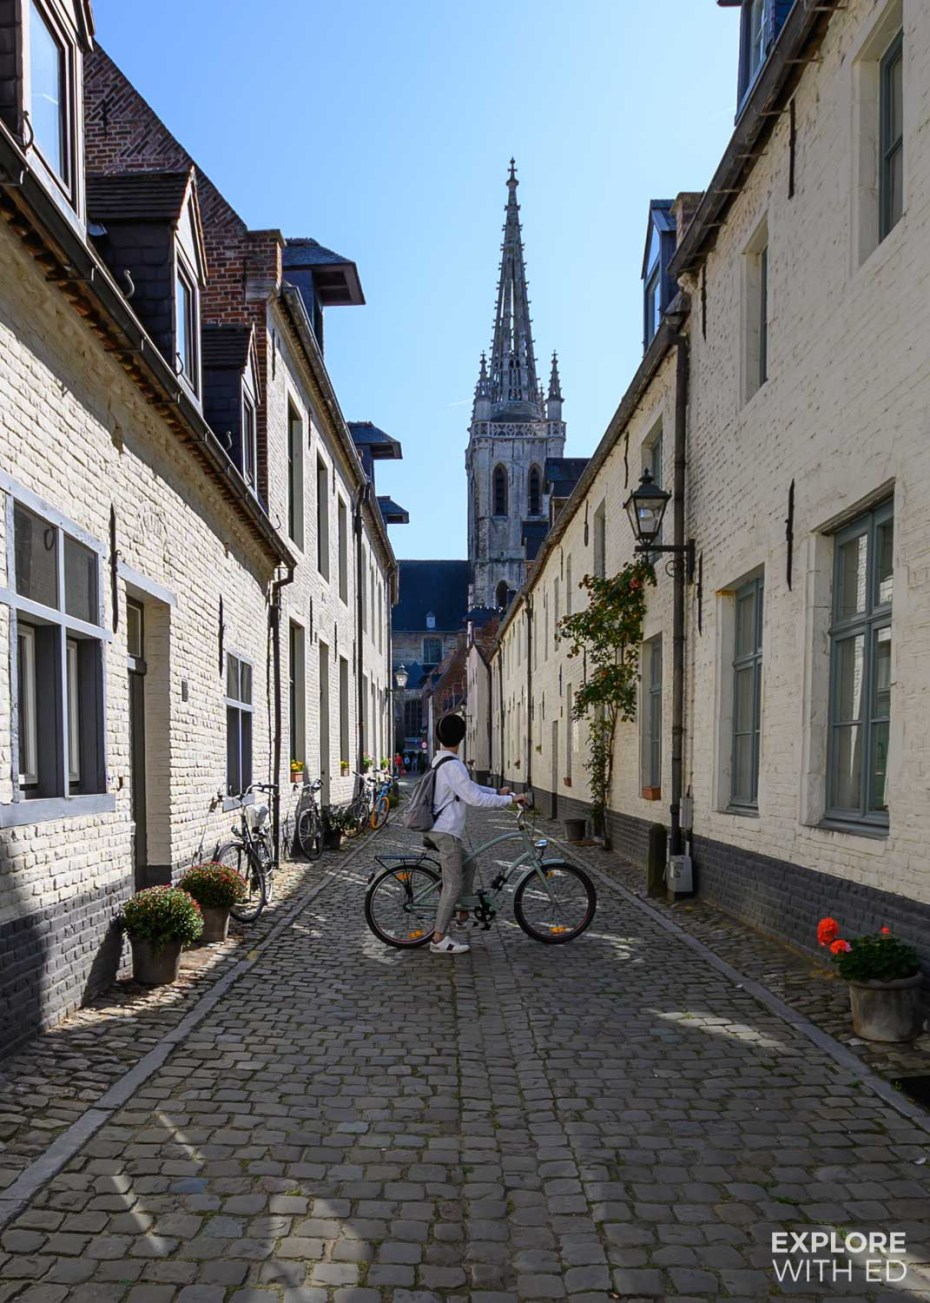 The Small Beguinage in Leuven near St Gertrude's Abbey